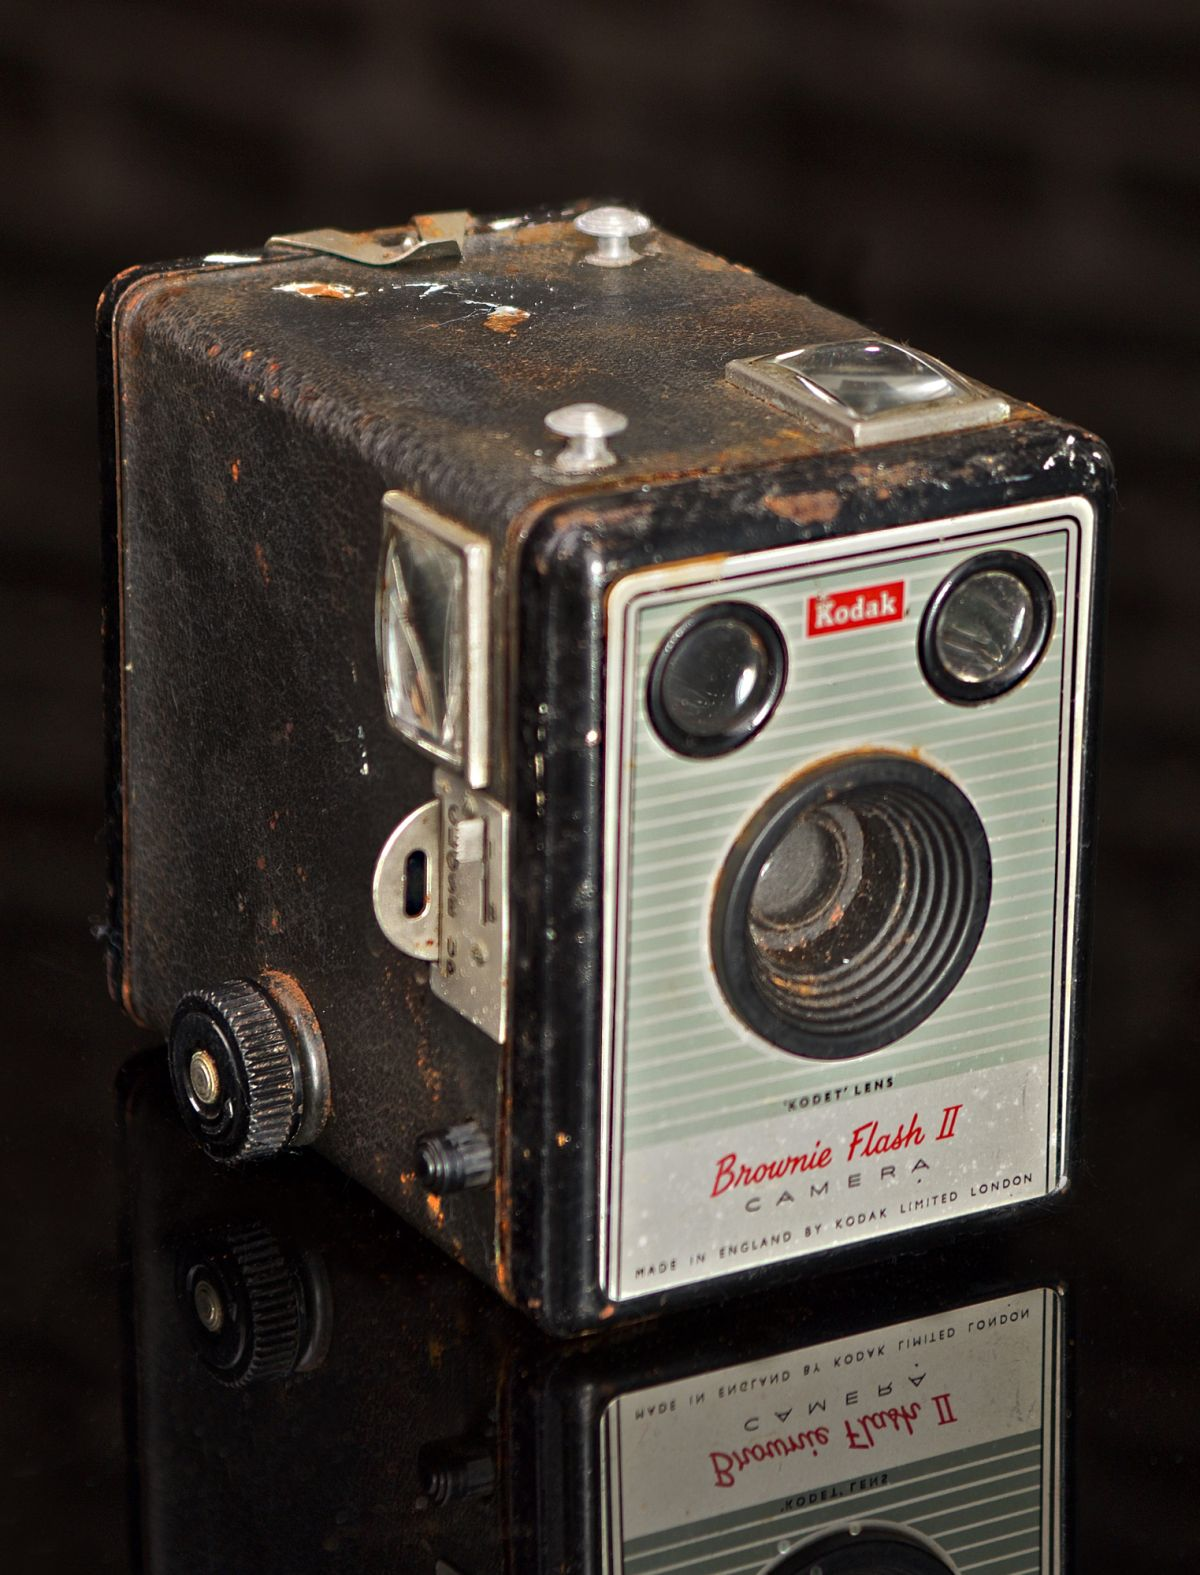 KODAK BROWNIE FLASH II EUROPEAN MODEL